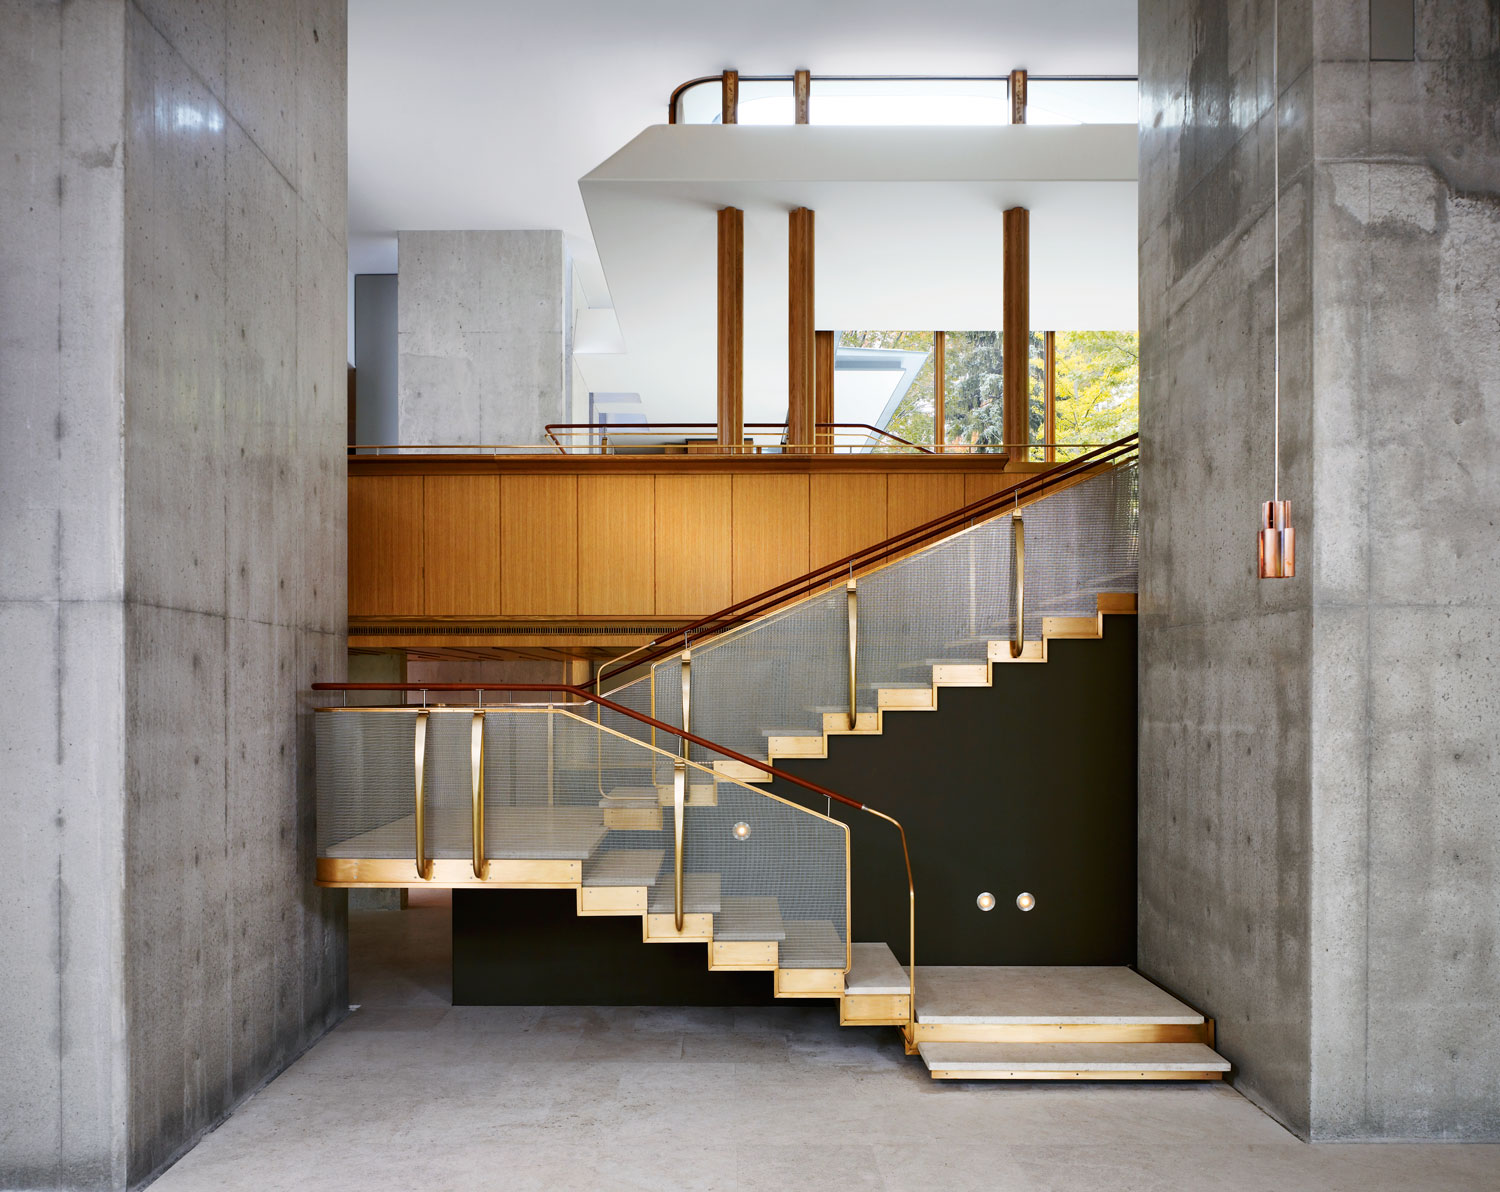 Integral House by Shim-Sutcliffe Architects // Toronto, Canada | YellowtraceIntegral House by Shim-Sutcliffe Architects // Toronto, Canada | Yellowtrace